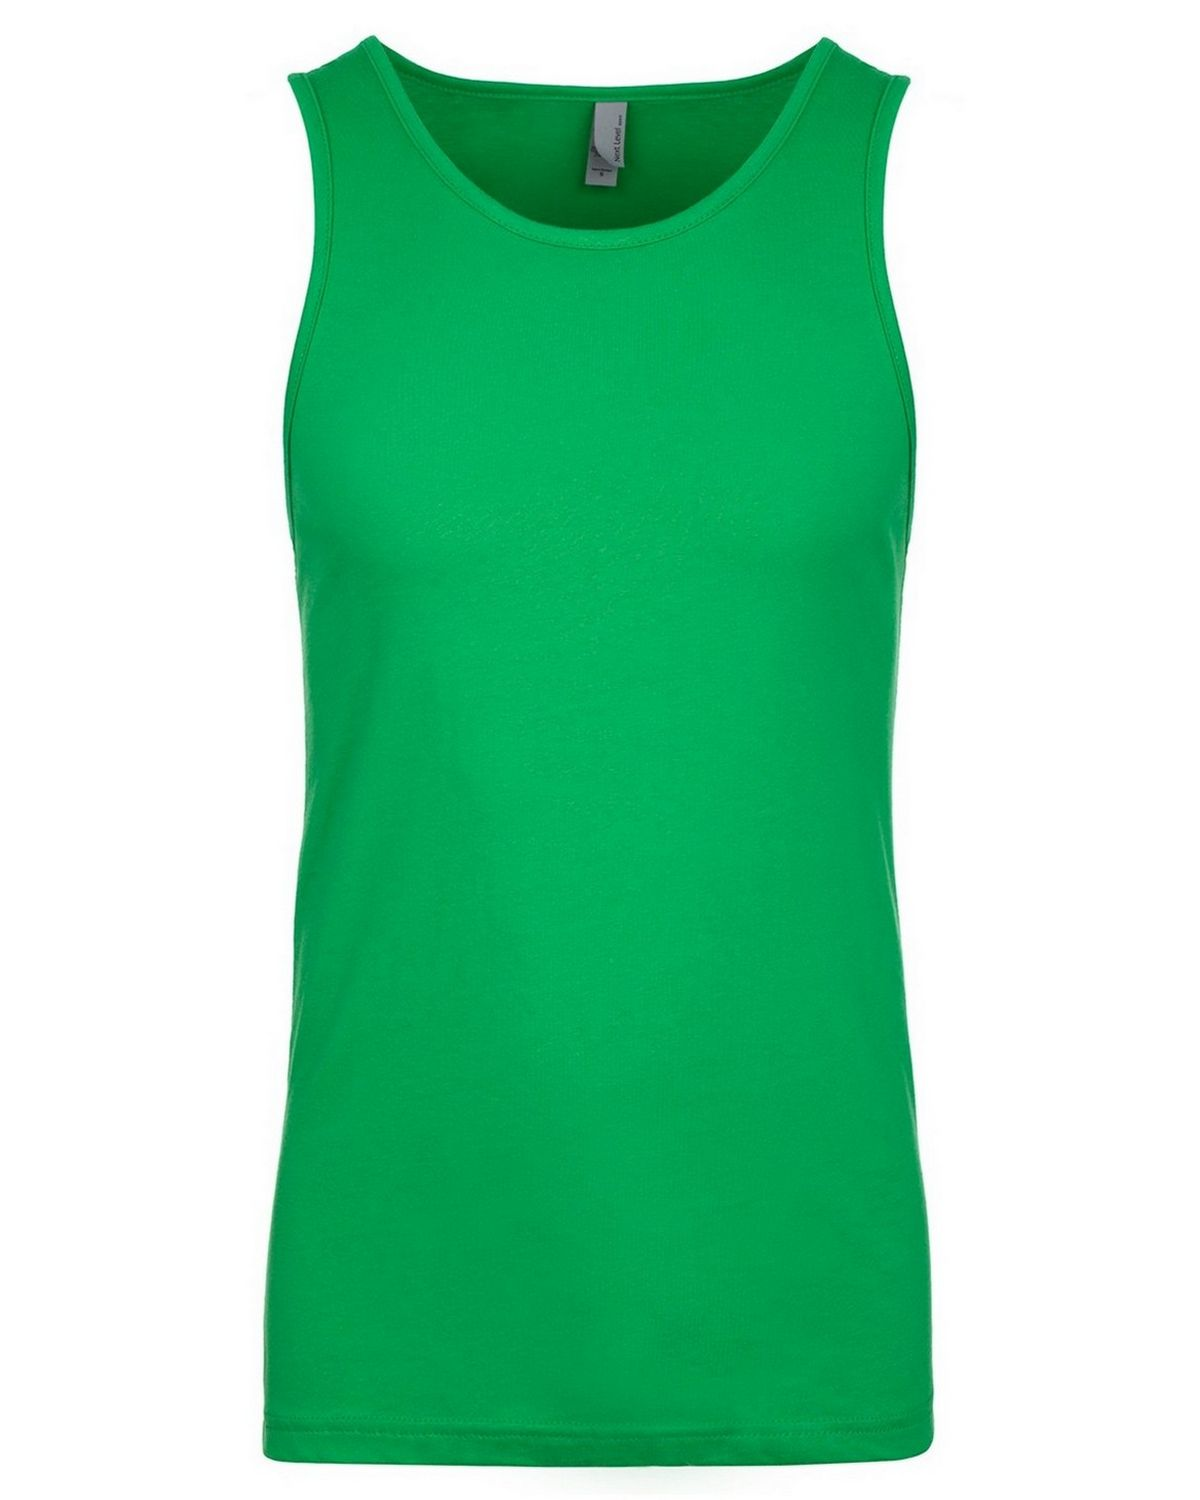 ef1ce2f2217a0 3633 - Large UPC 846907053226 product image for Next Level 3633 Premium  Jersey Tank - Kelly Green - L ...